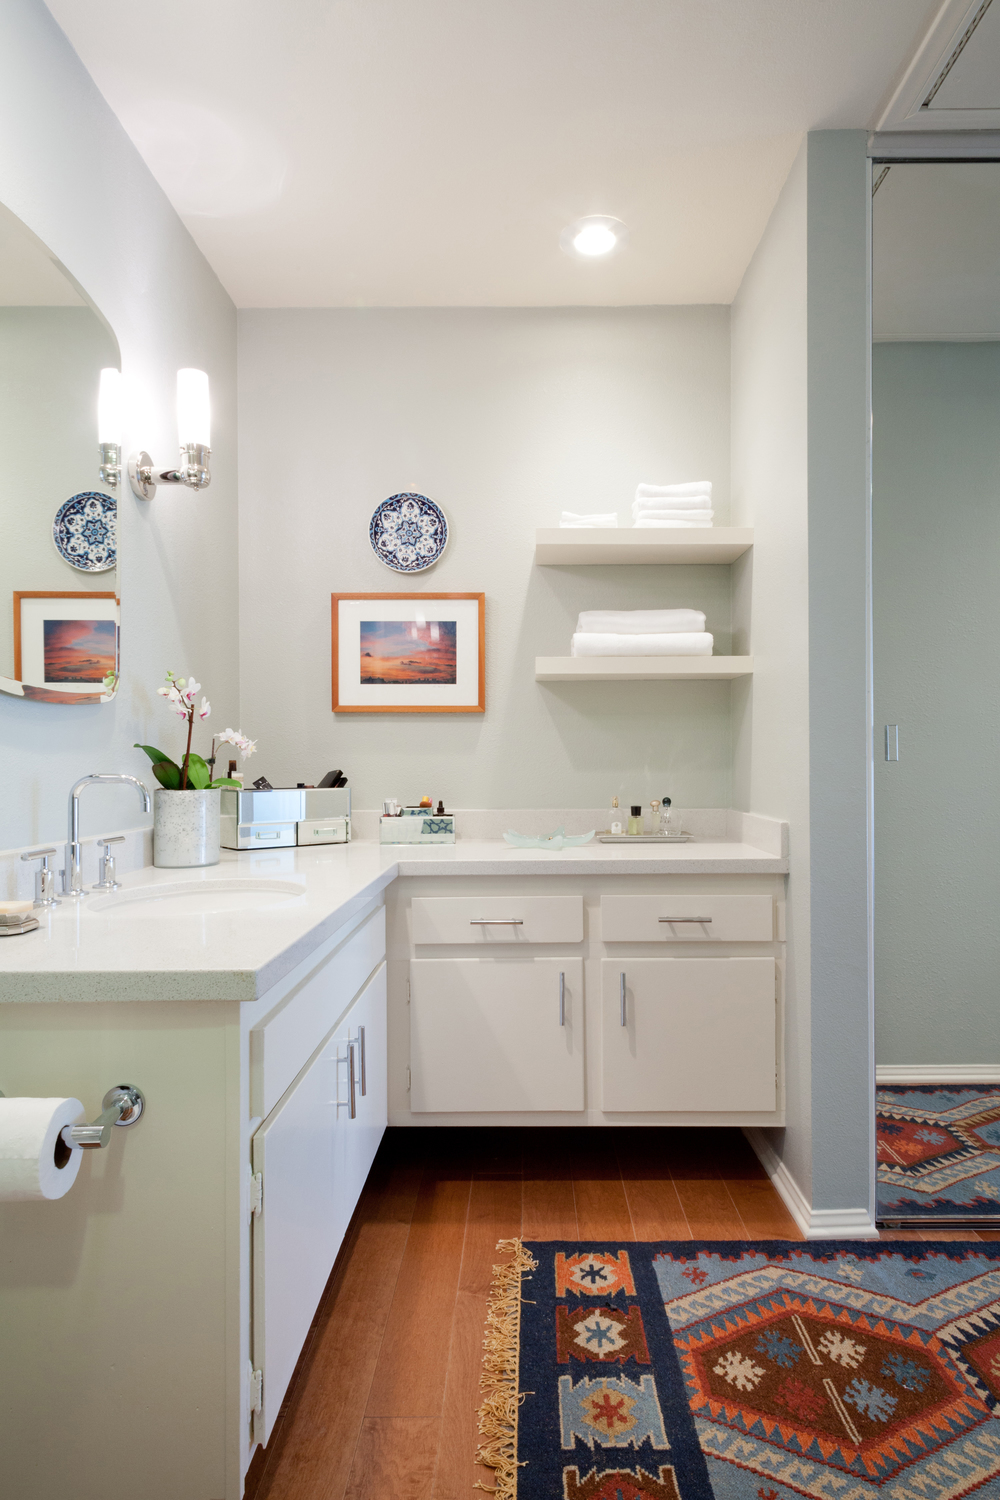 The vanilty after. The inspiration piece for the bathroom design. photo by Amy Bartlam